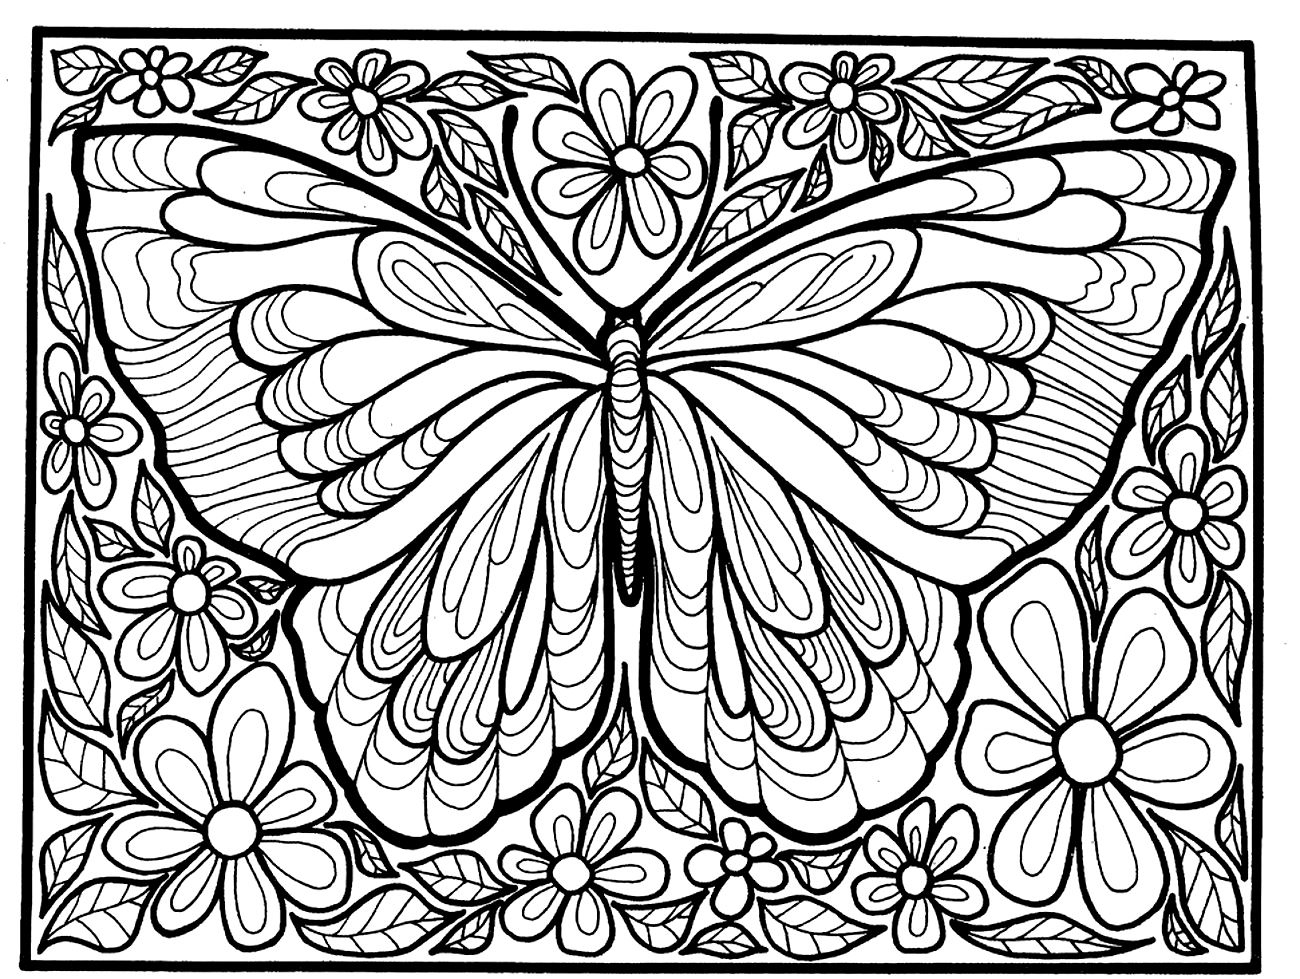 Insect Coloring Pages Best Coloring Pages For Kids